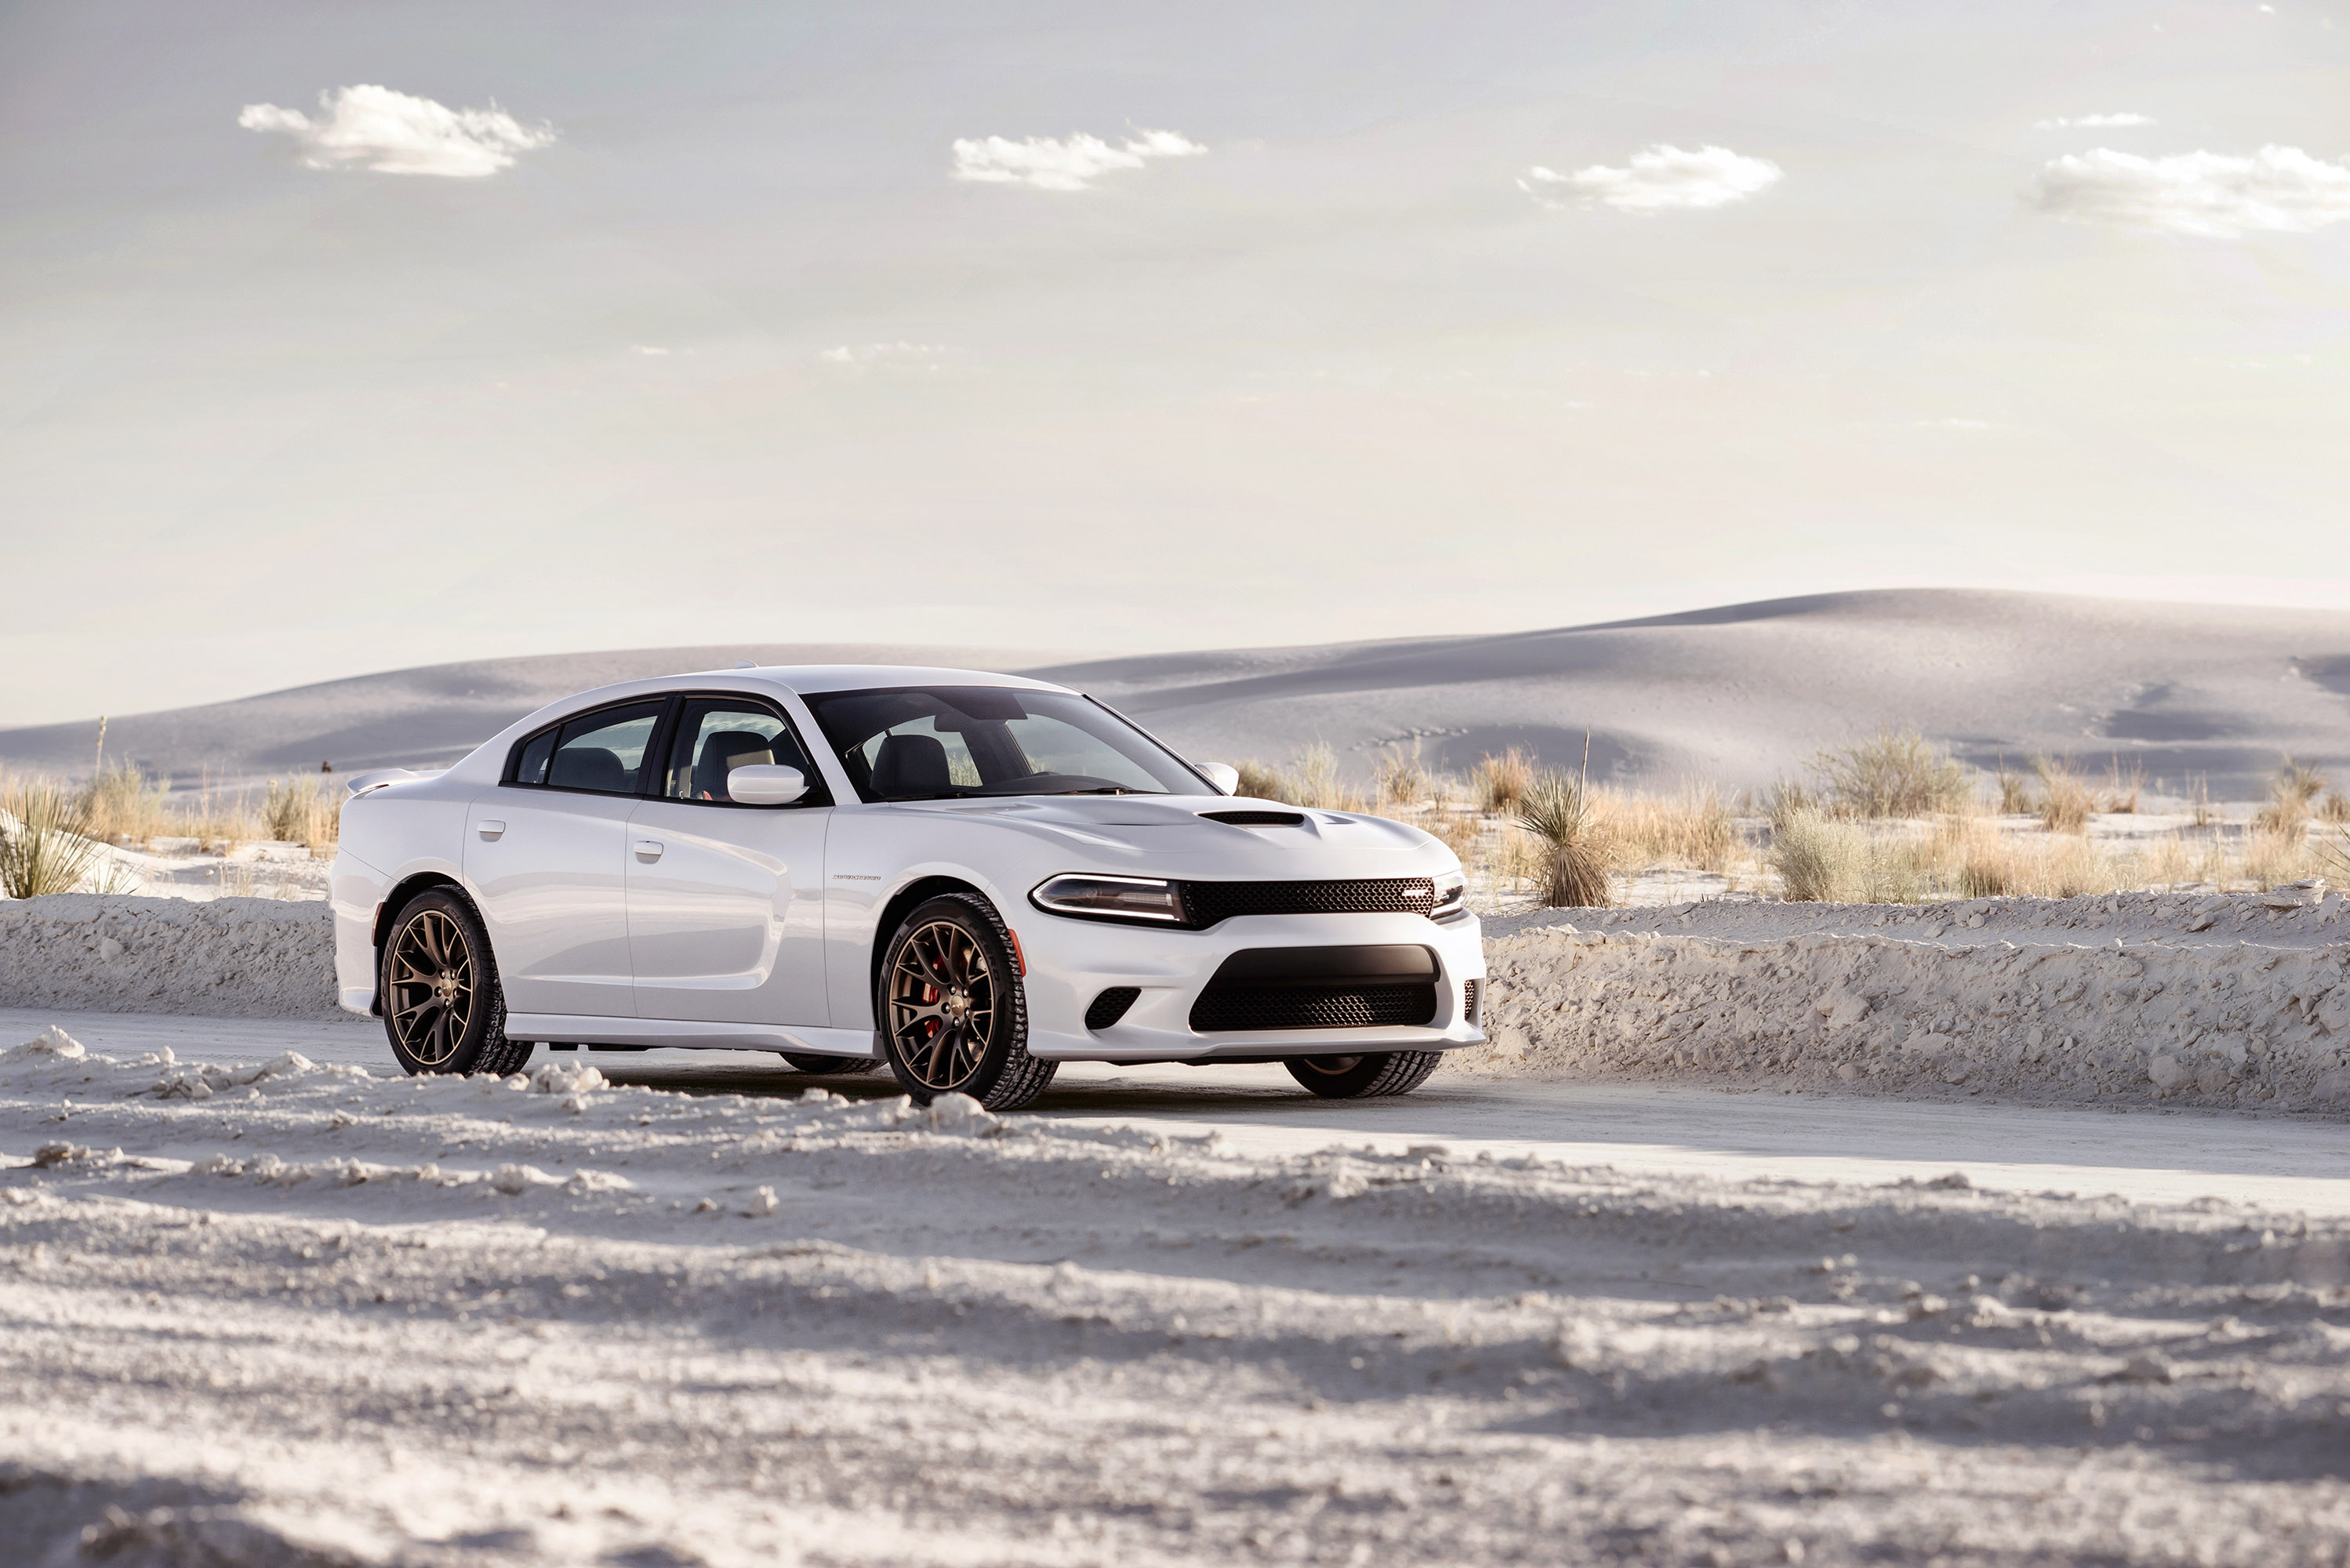 2015 dodge charger srt hellcat 707hp and 880nm. Black Bedroom Furniture Sets. Home Design Ideas